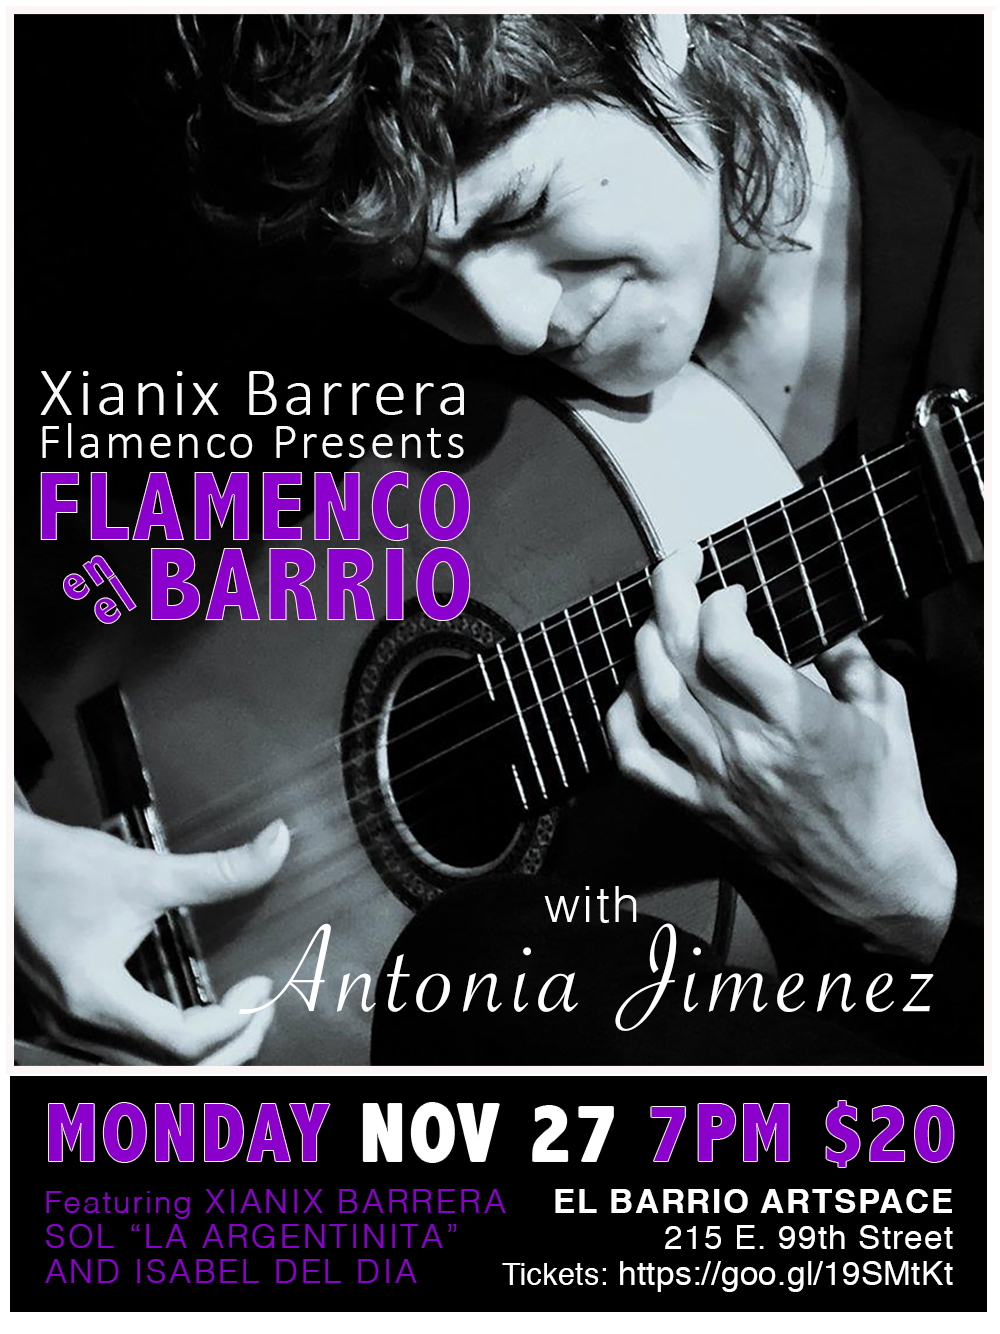 Monday, Nov 27 - 7pm - Join us for a special evening with Antonia Jimenez, one of Spain's finest and in demand flamenco guitarists. Antonia will share her music, and her journey as one of flamenco's few female guitarists. Come experience the creative genius of this unique tocaora in an intimate setting with Xianix Barrera, Glenda Sol and Isabel del Dia.